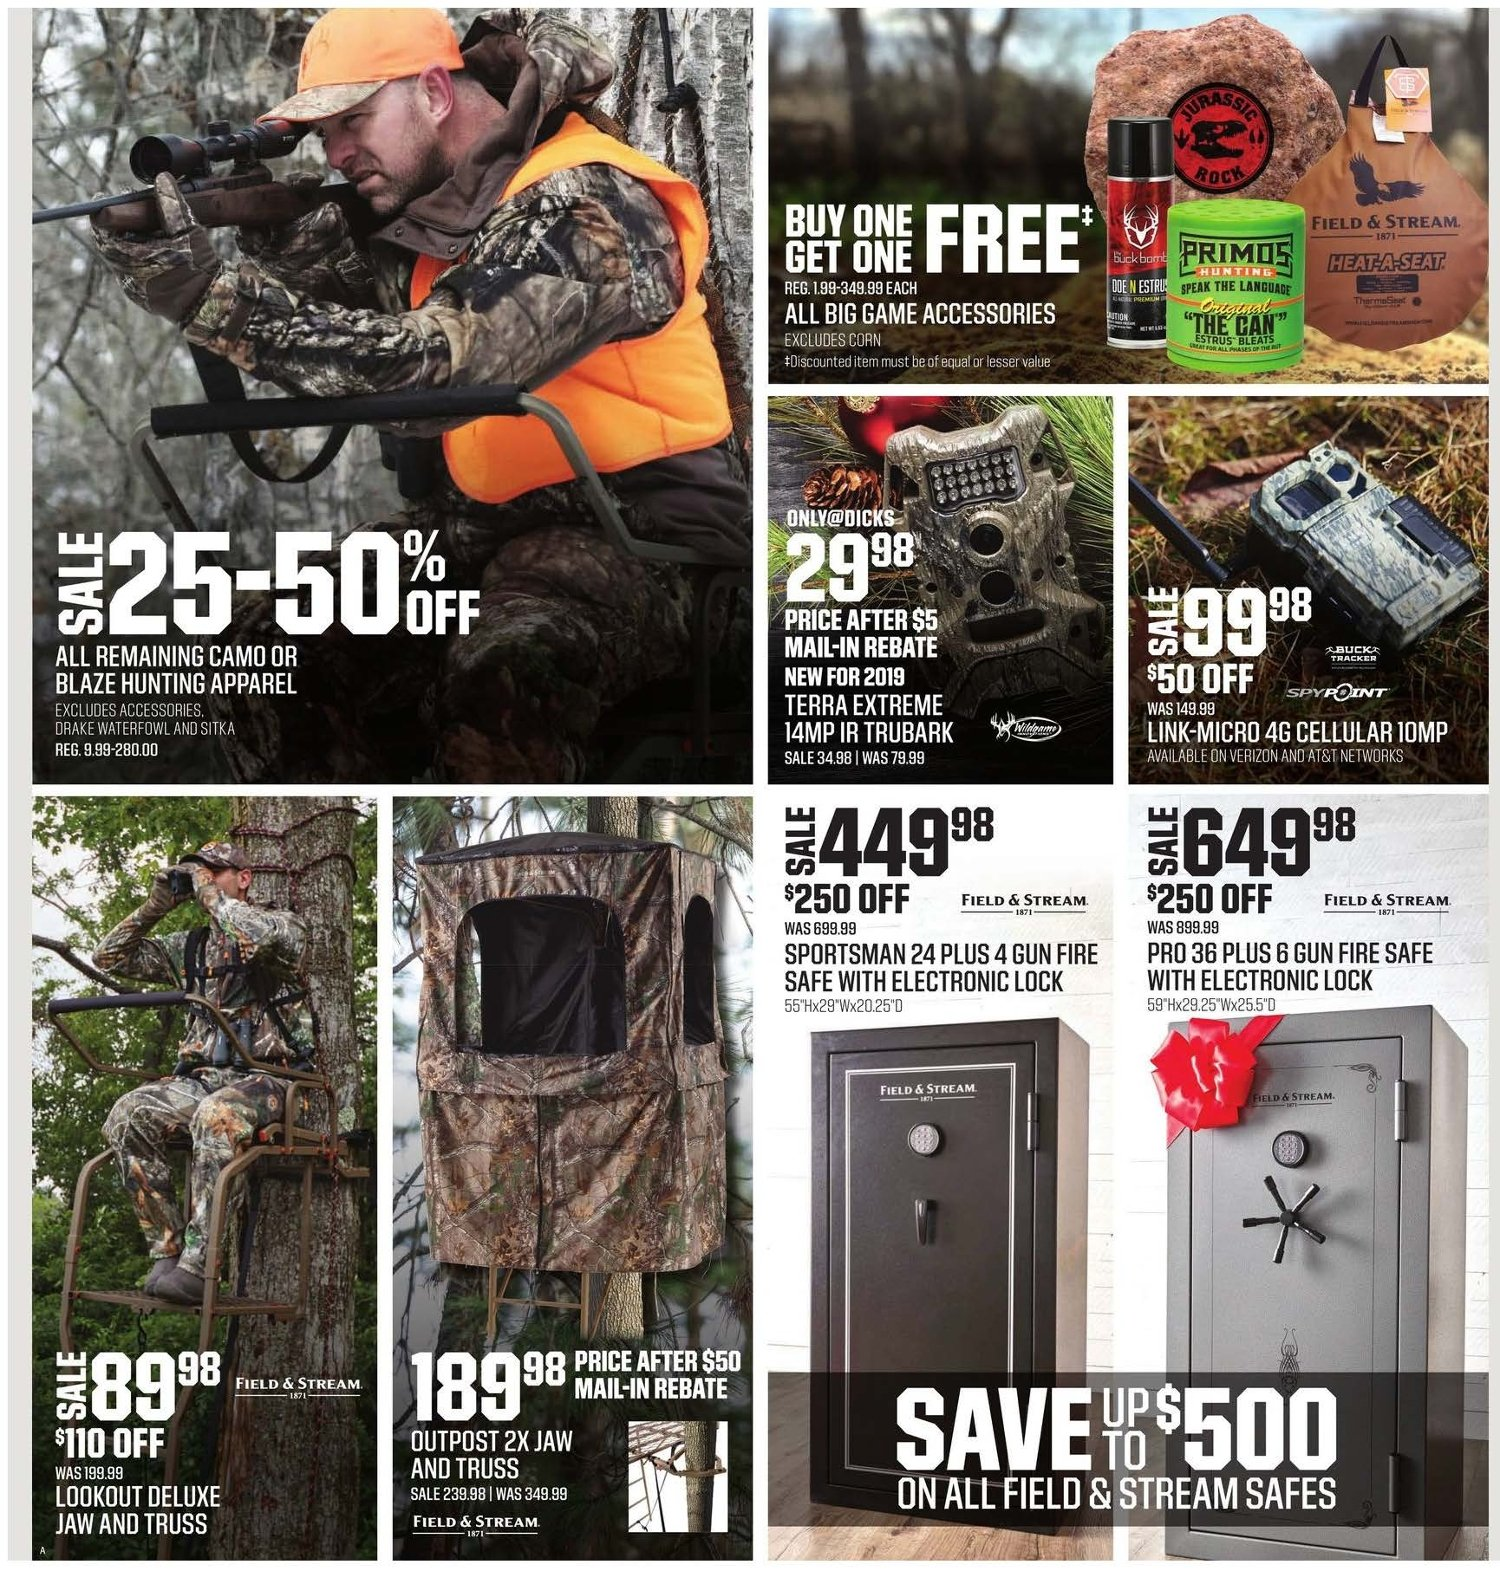 Dick's Sporting Goods Cyber Monday 2019 Page 13